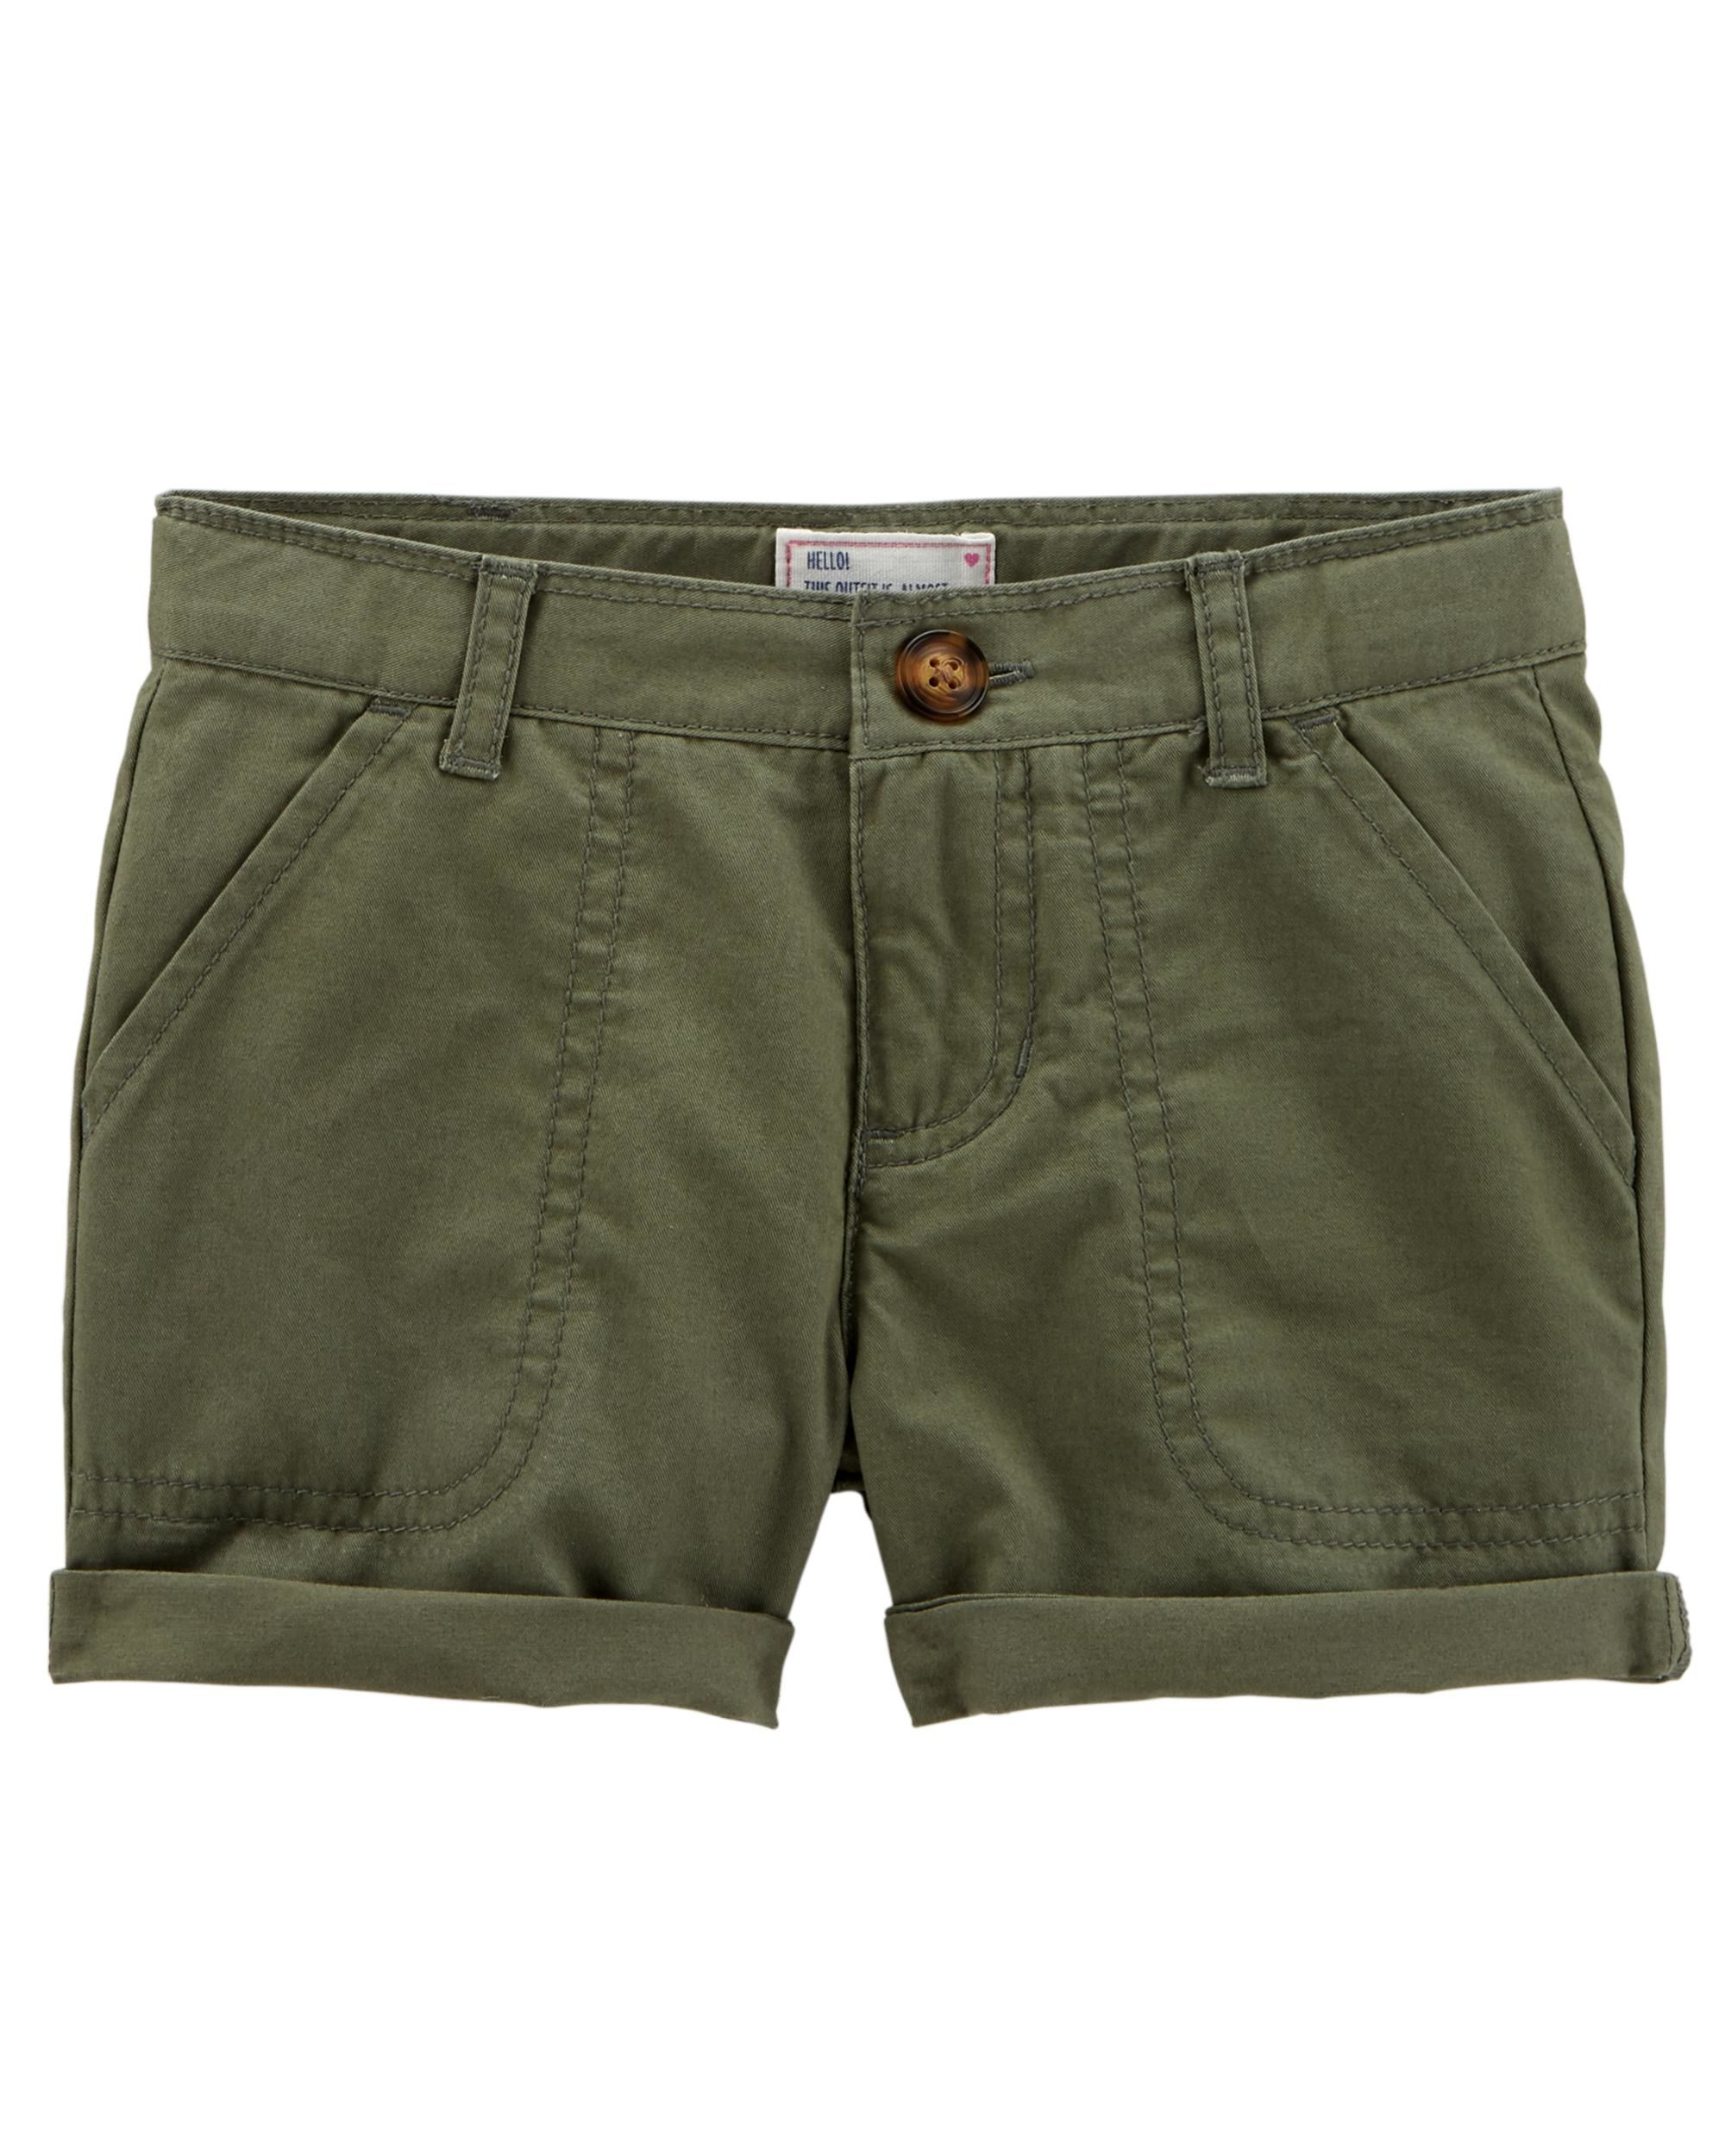 Carter's Baby Girls' Twill Roll-Cuff Shorts - Olive